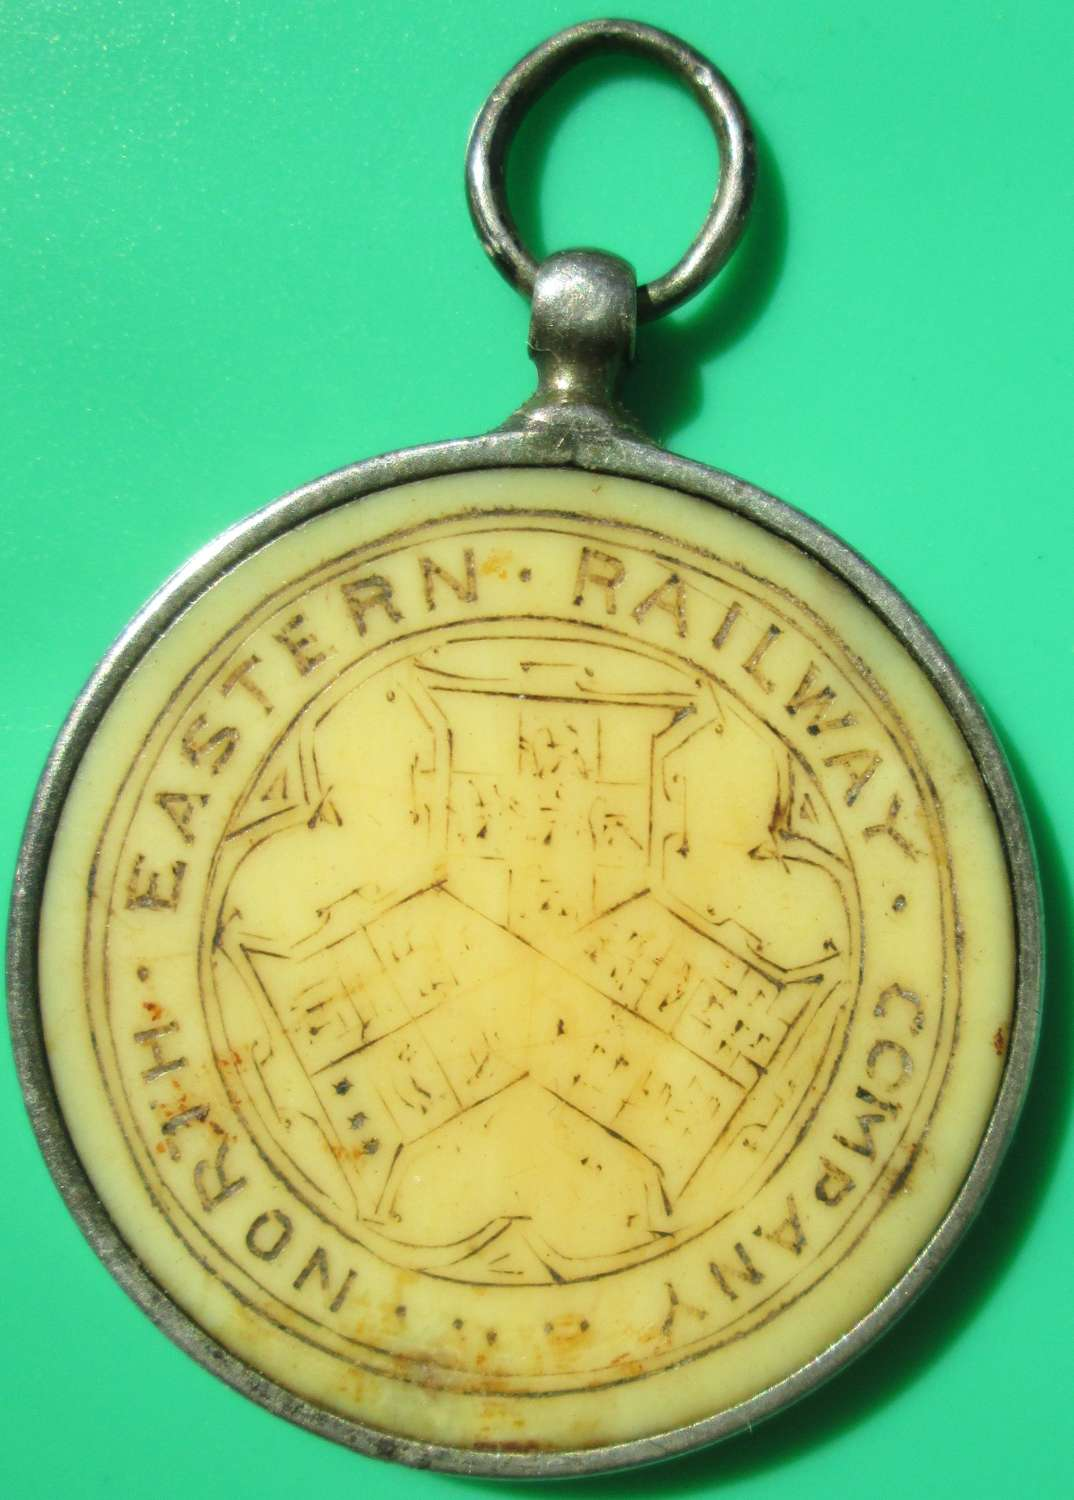 A RARE 1860'S PERIOD NORTH EASTERN RAILWAYS DRIVERS / CONDUCTORS PASS